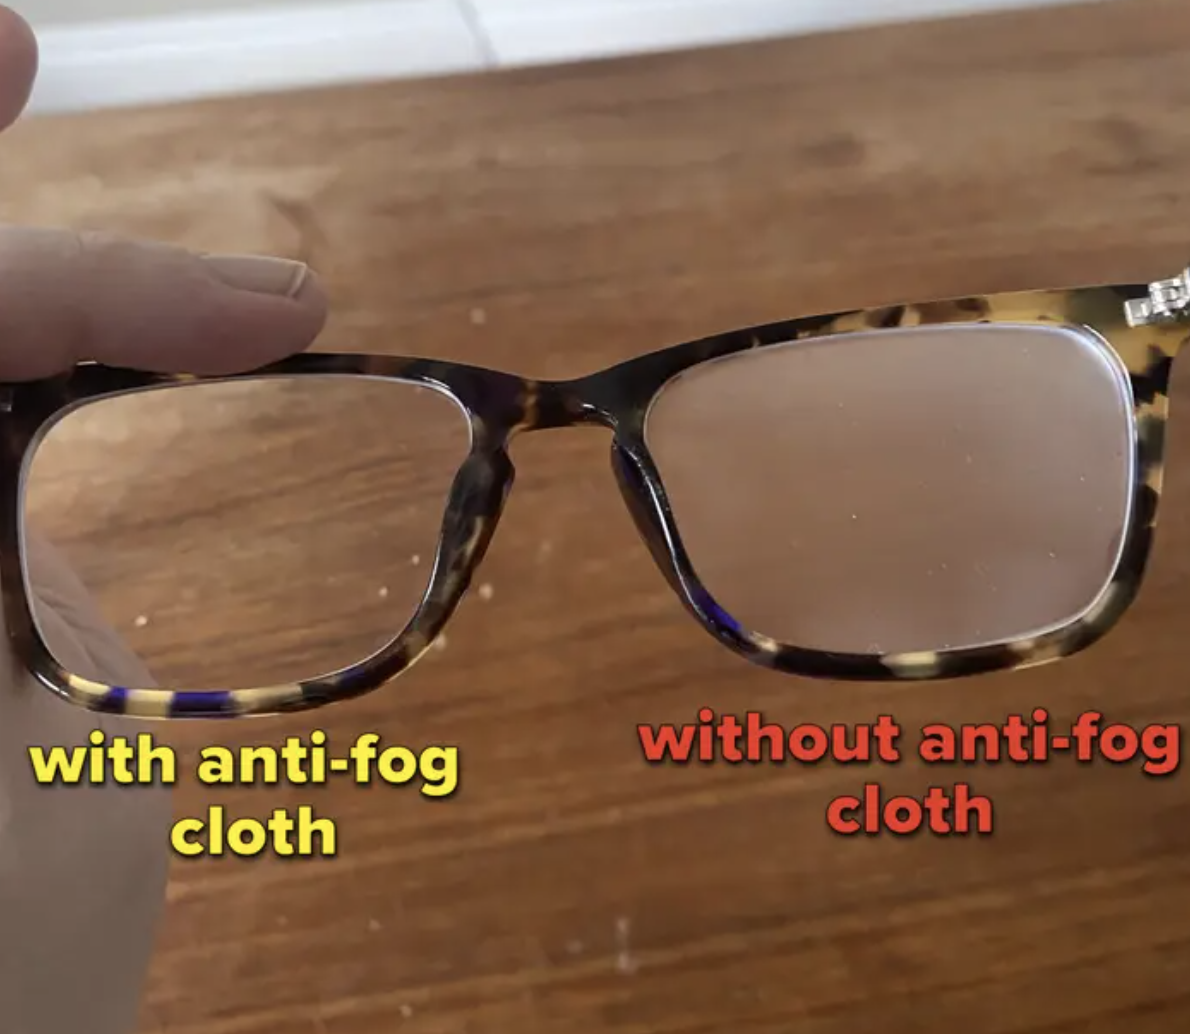 A comparison of each lens on a pair of glasses one with fog and one without